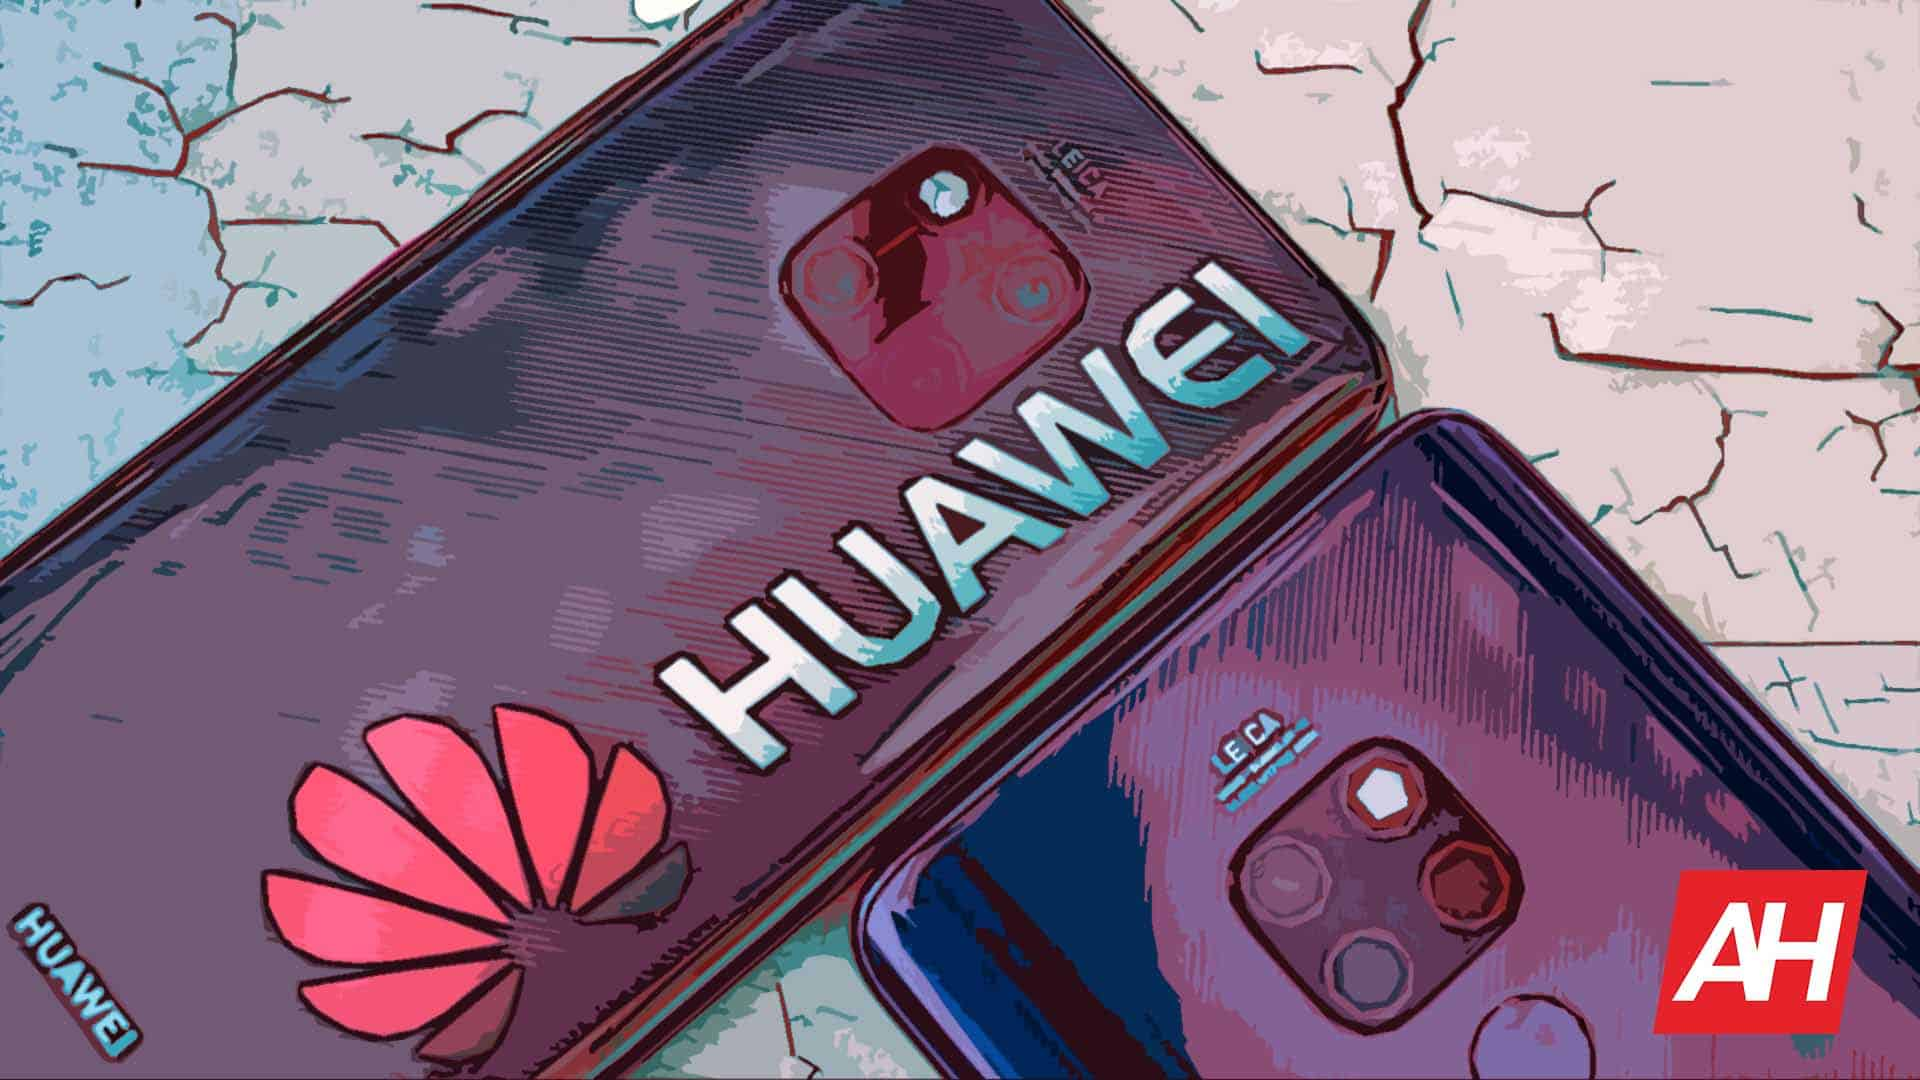 Huawei Illustration Smartphones Devices Logo AH May 20 2019